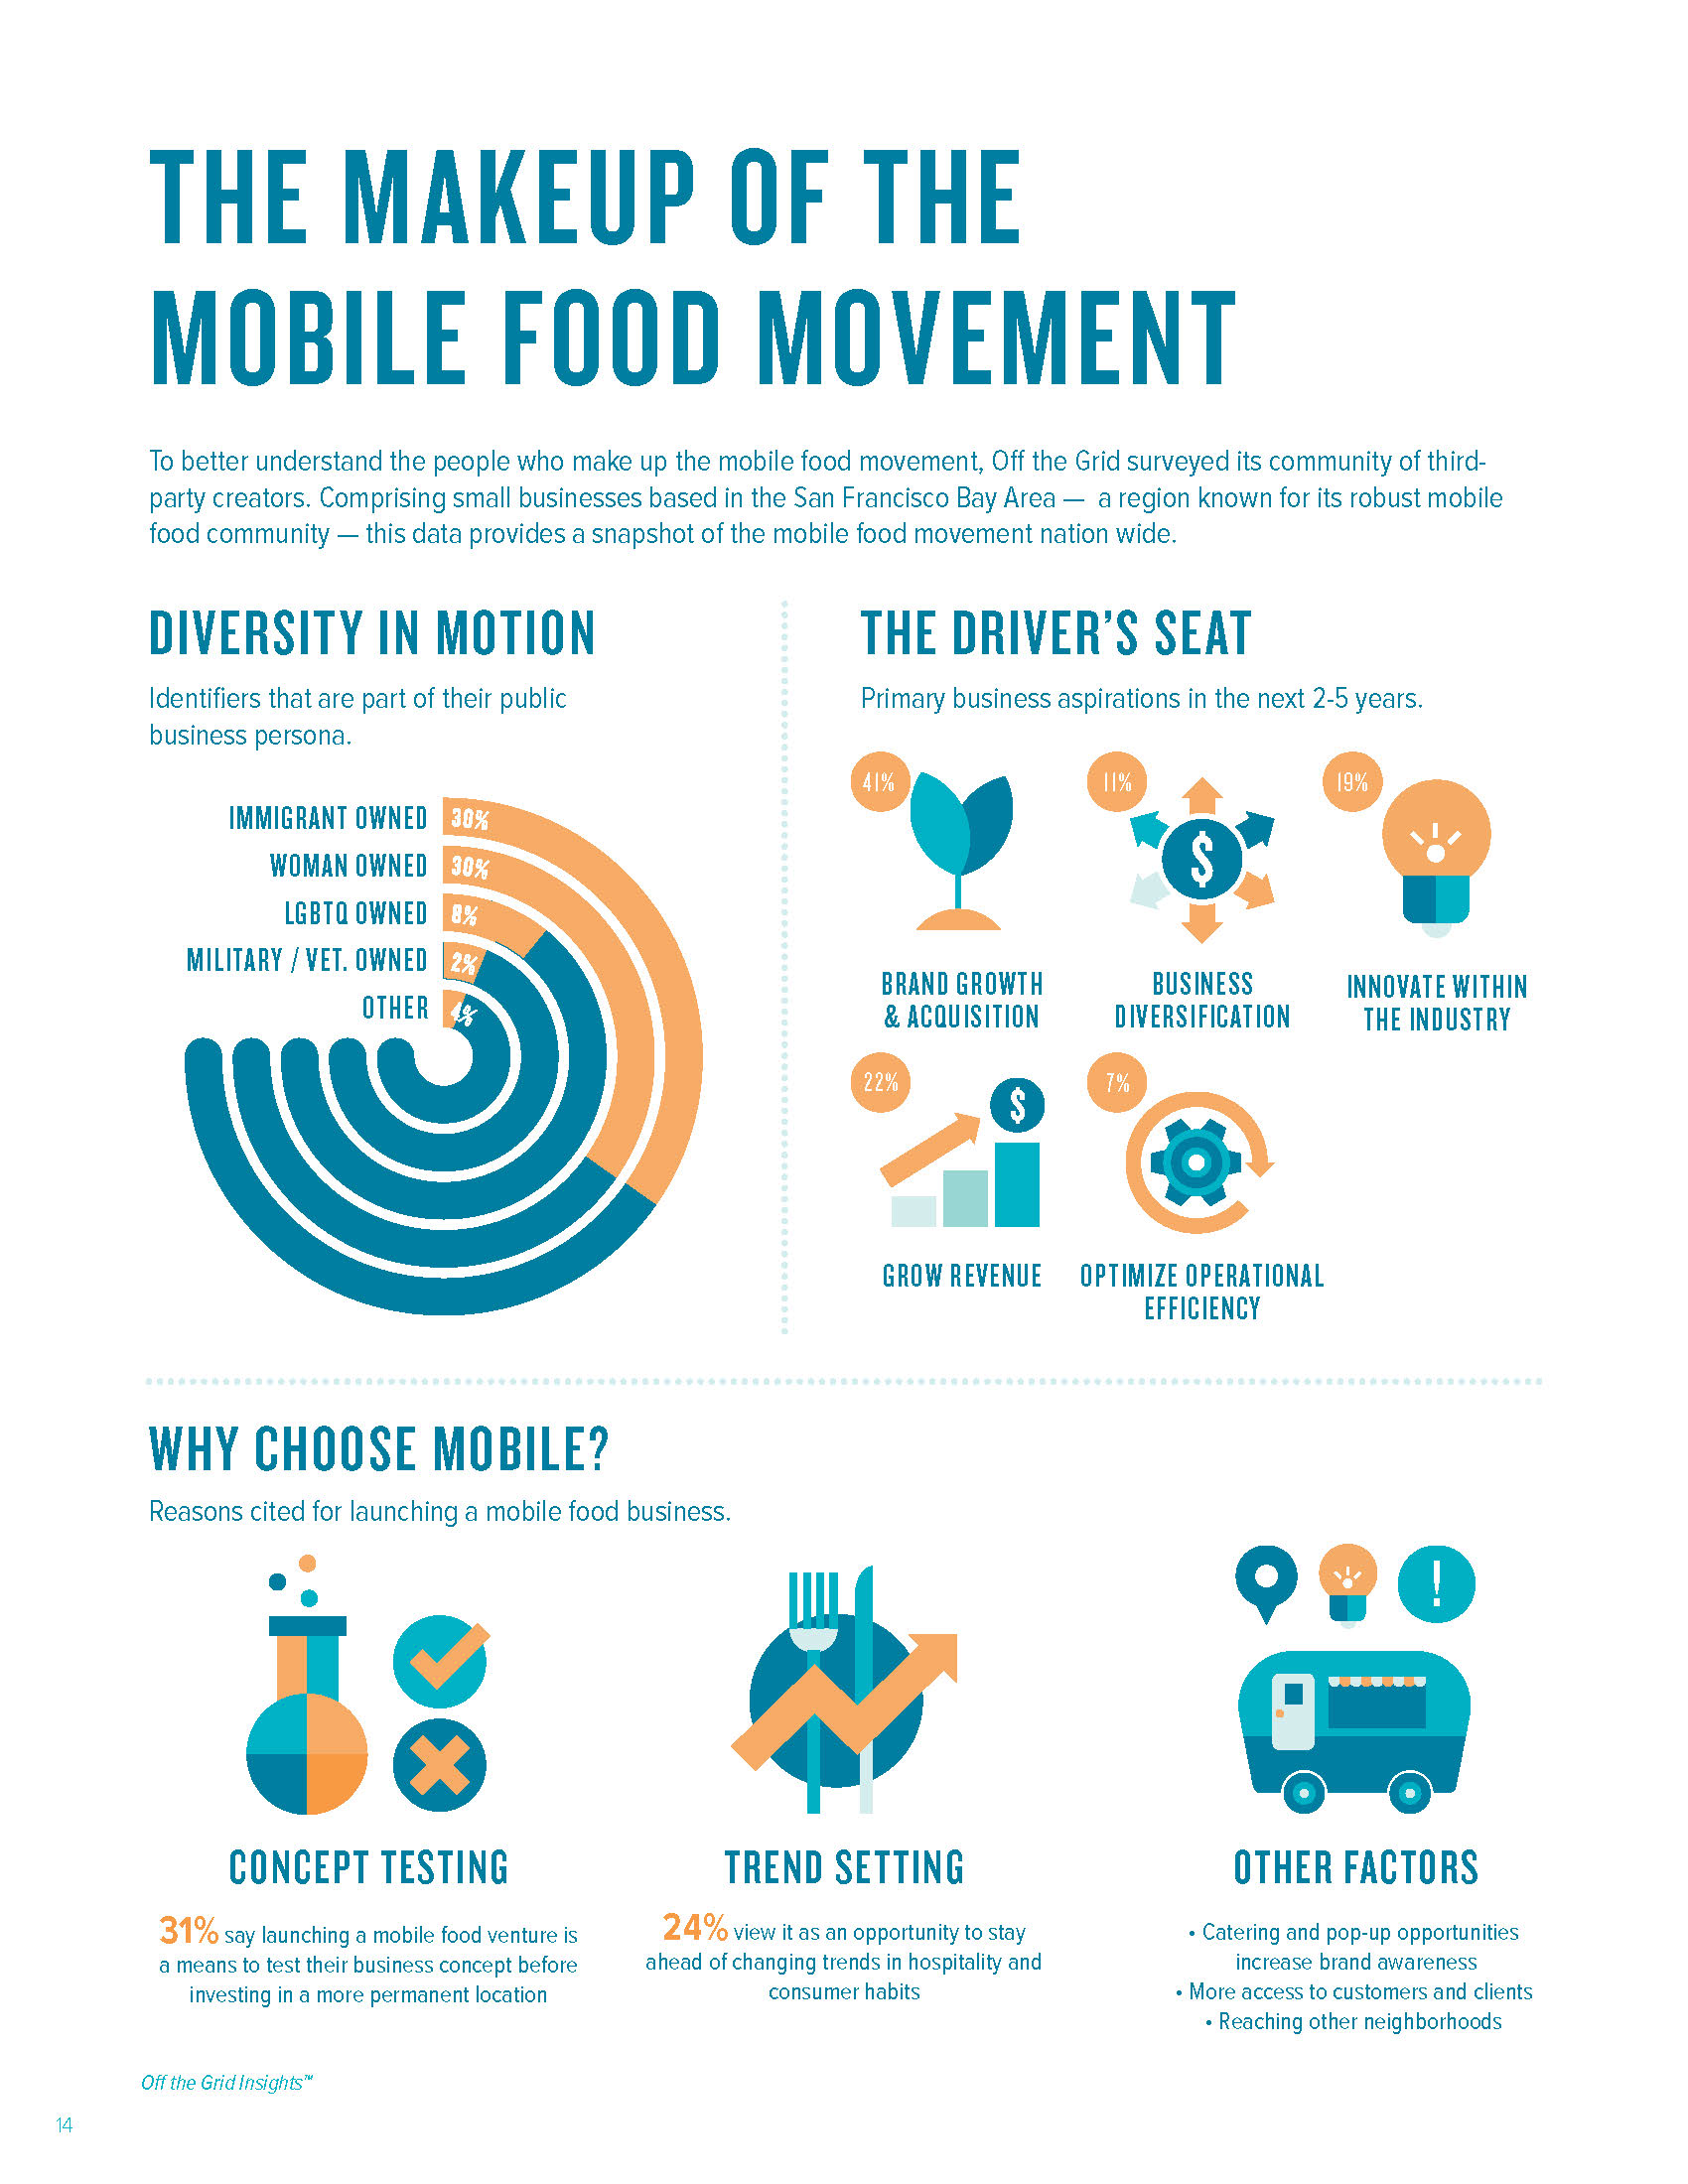 Makeup of the Mobile Food Movement